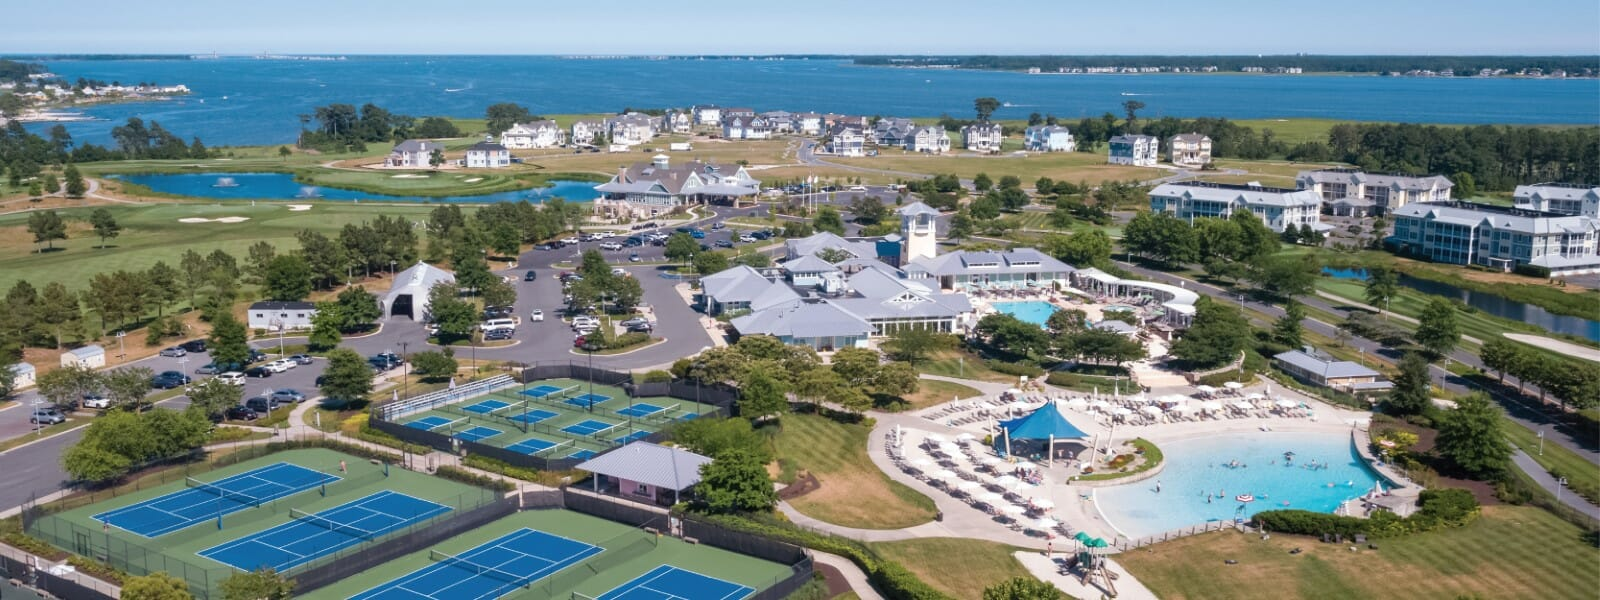 Delaware Gated Communities   The Peninsula on Indian River Bay